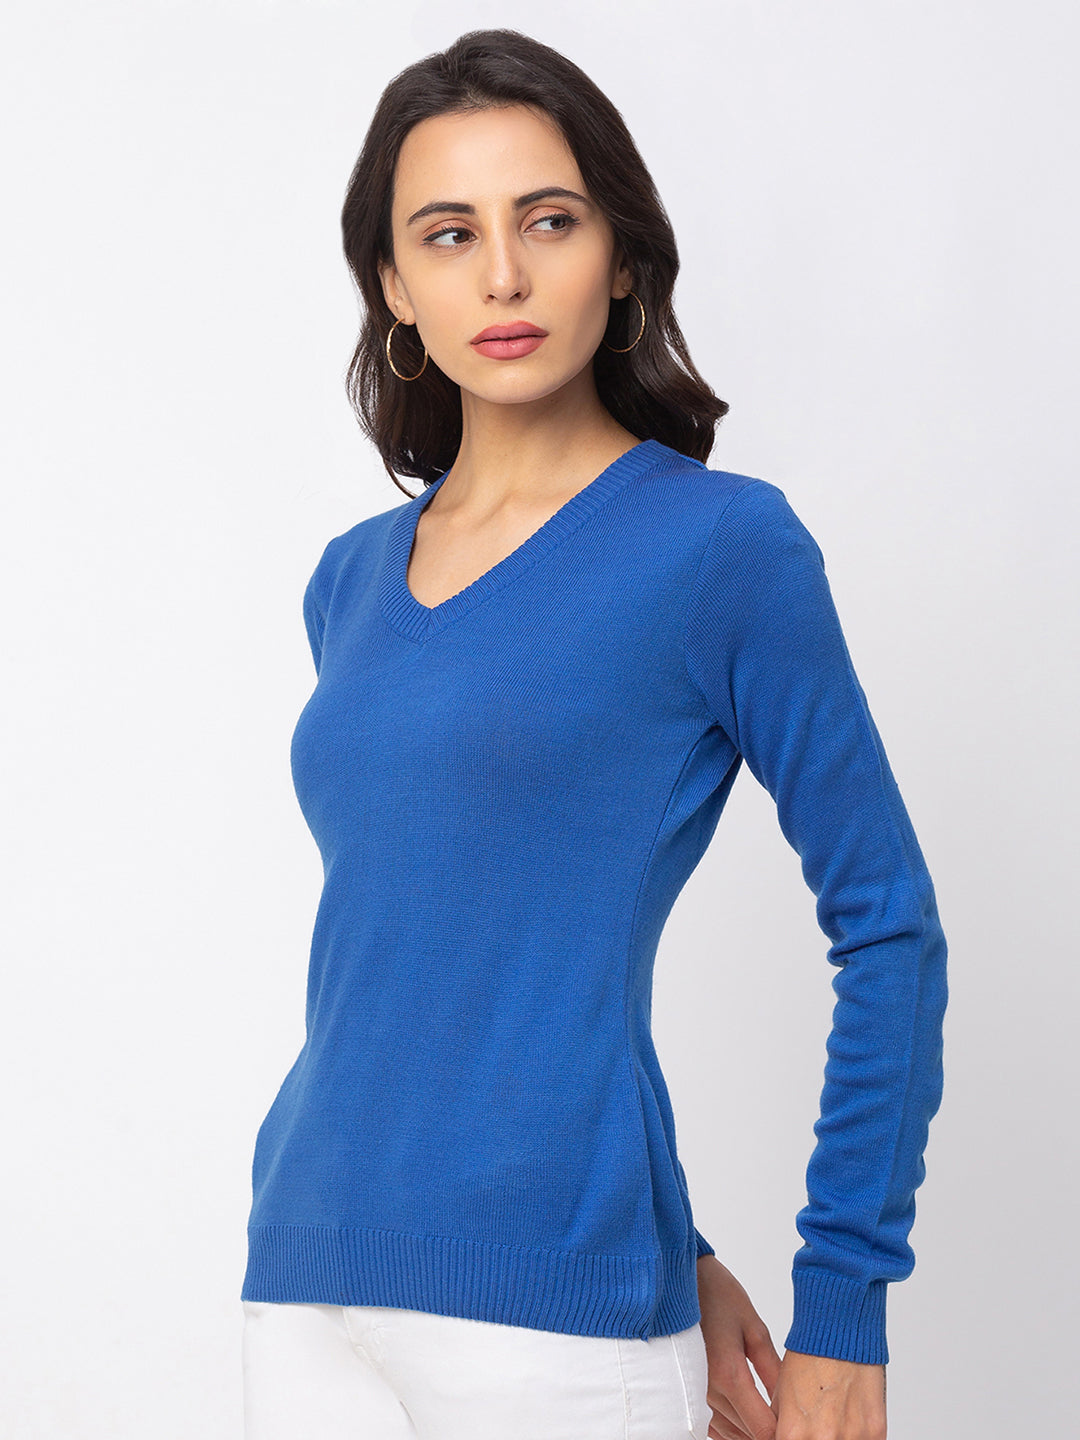 Globus Blue Solid Sweater-2